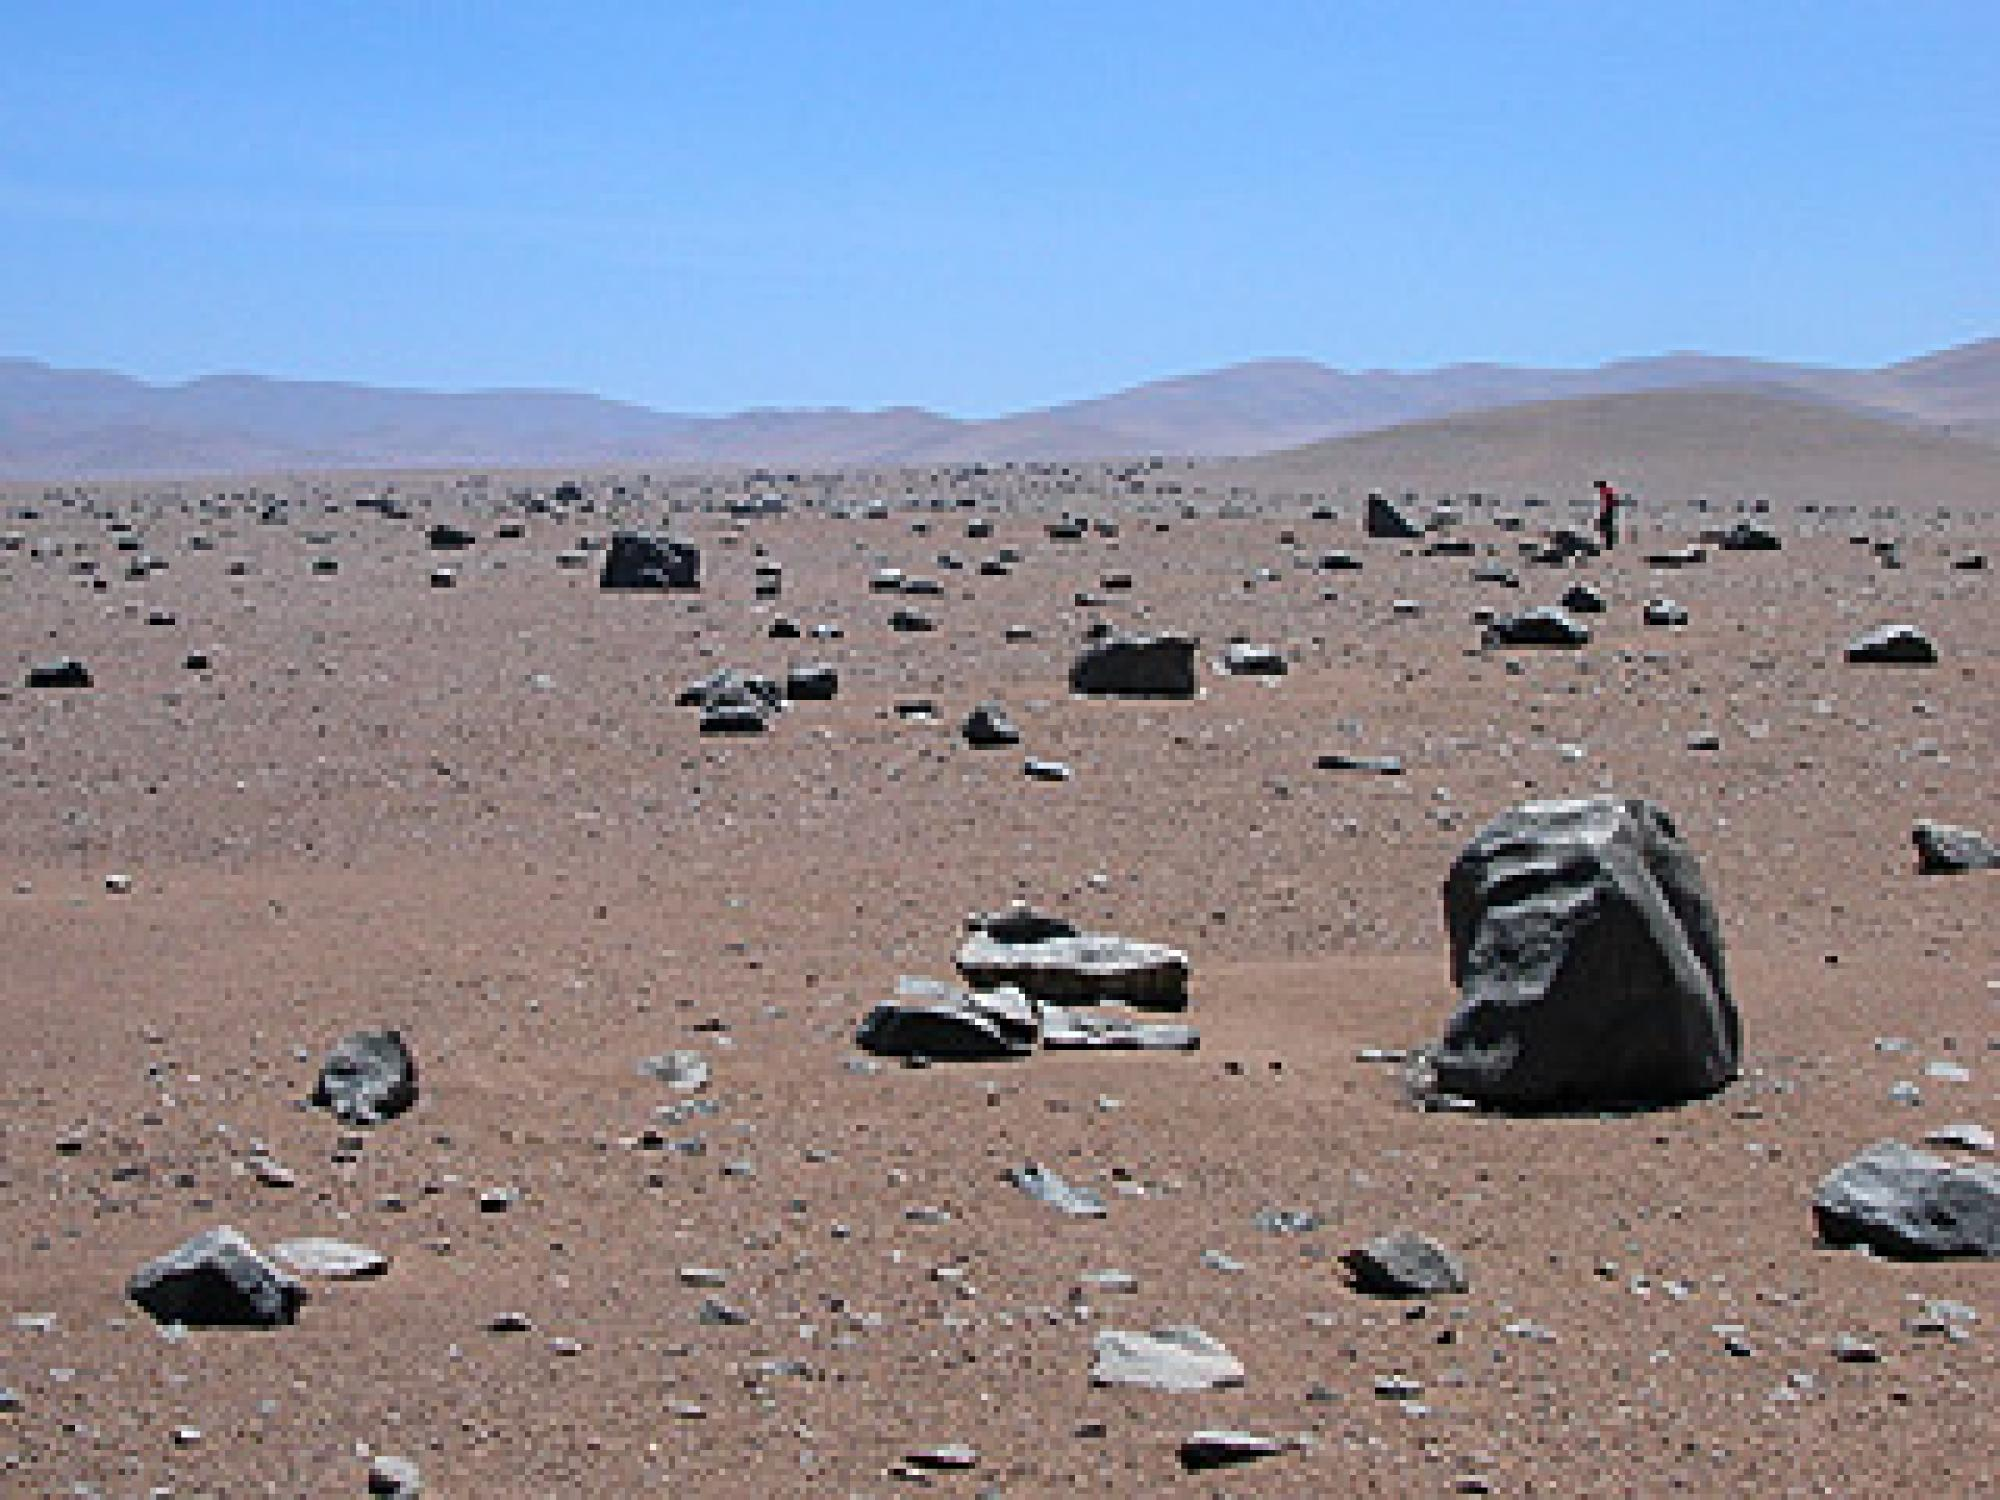 Although the Mars-like landscape of the Atacama desert's vegetation-less core gets rain maybe once a decade, the soil harbors microbial life eight to 12 inches below the parched surface. UA geoscientist Jay Quade can be seen in the distance. Photo cr